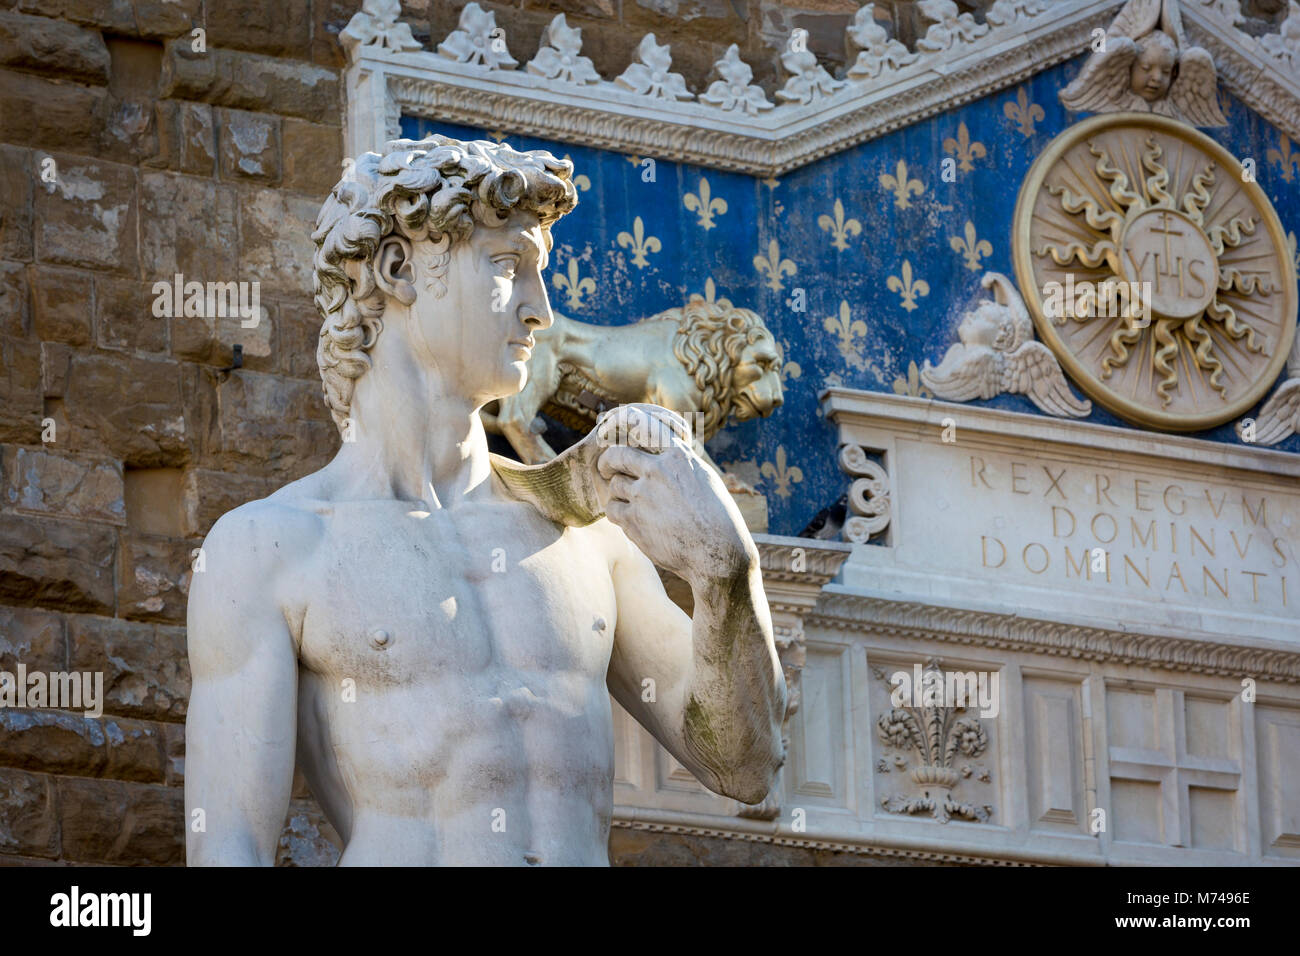 Copy of Michelangelo's David sculpture at Piazza della Signoria, Florence, Tuscany Italy - Stock Image